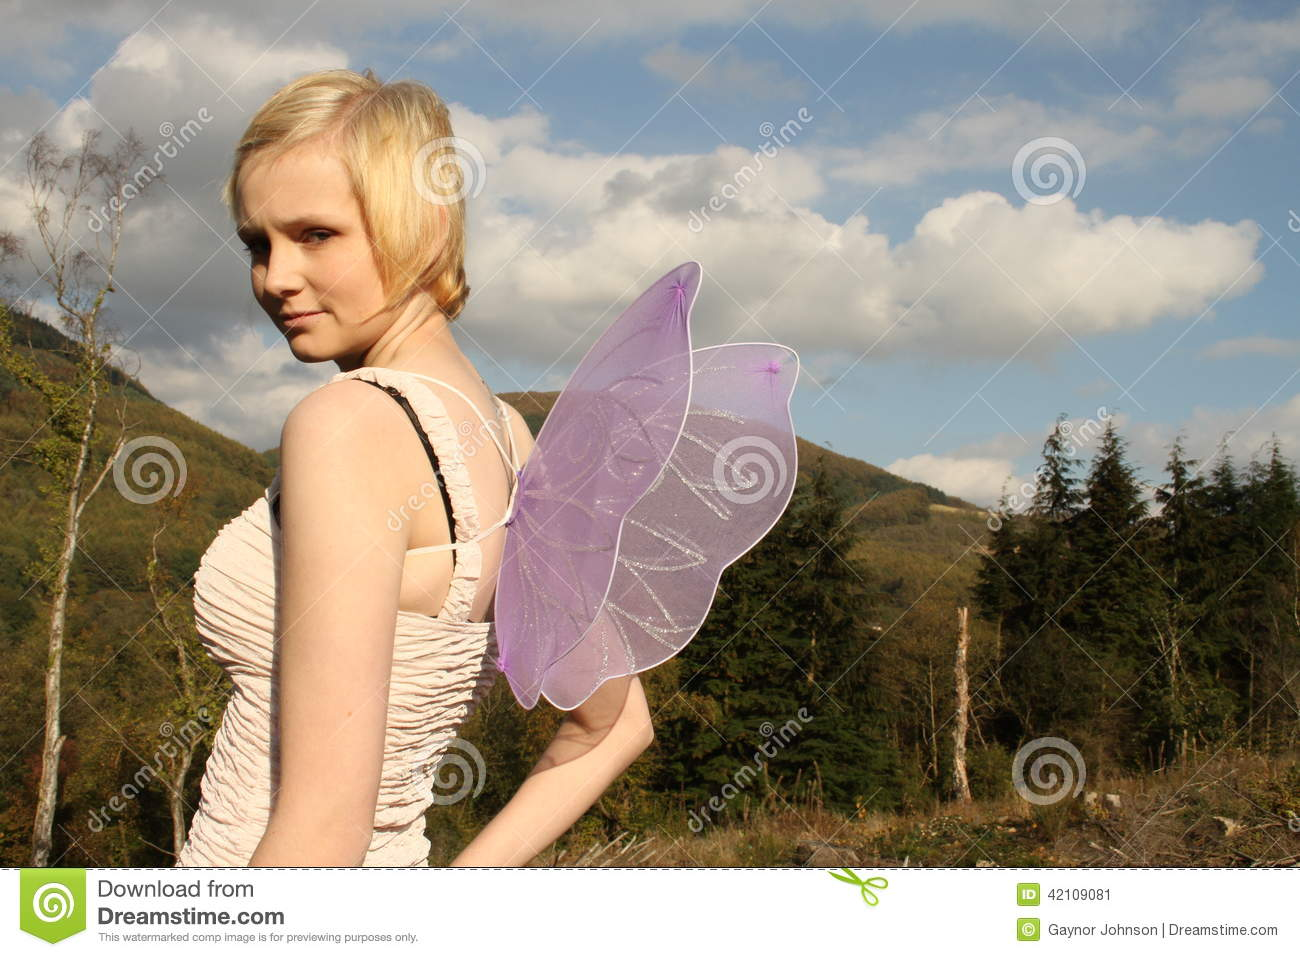 Young woman with wings against bright blue sky